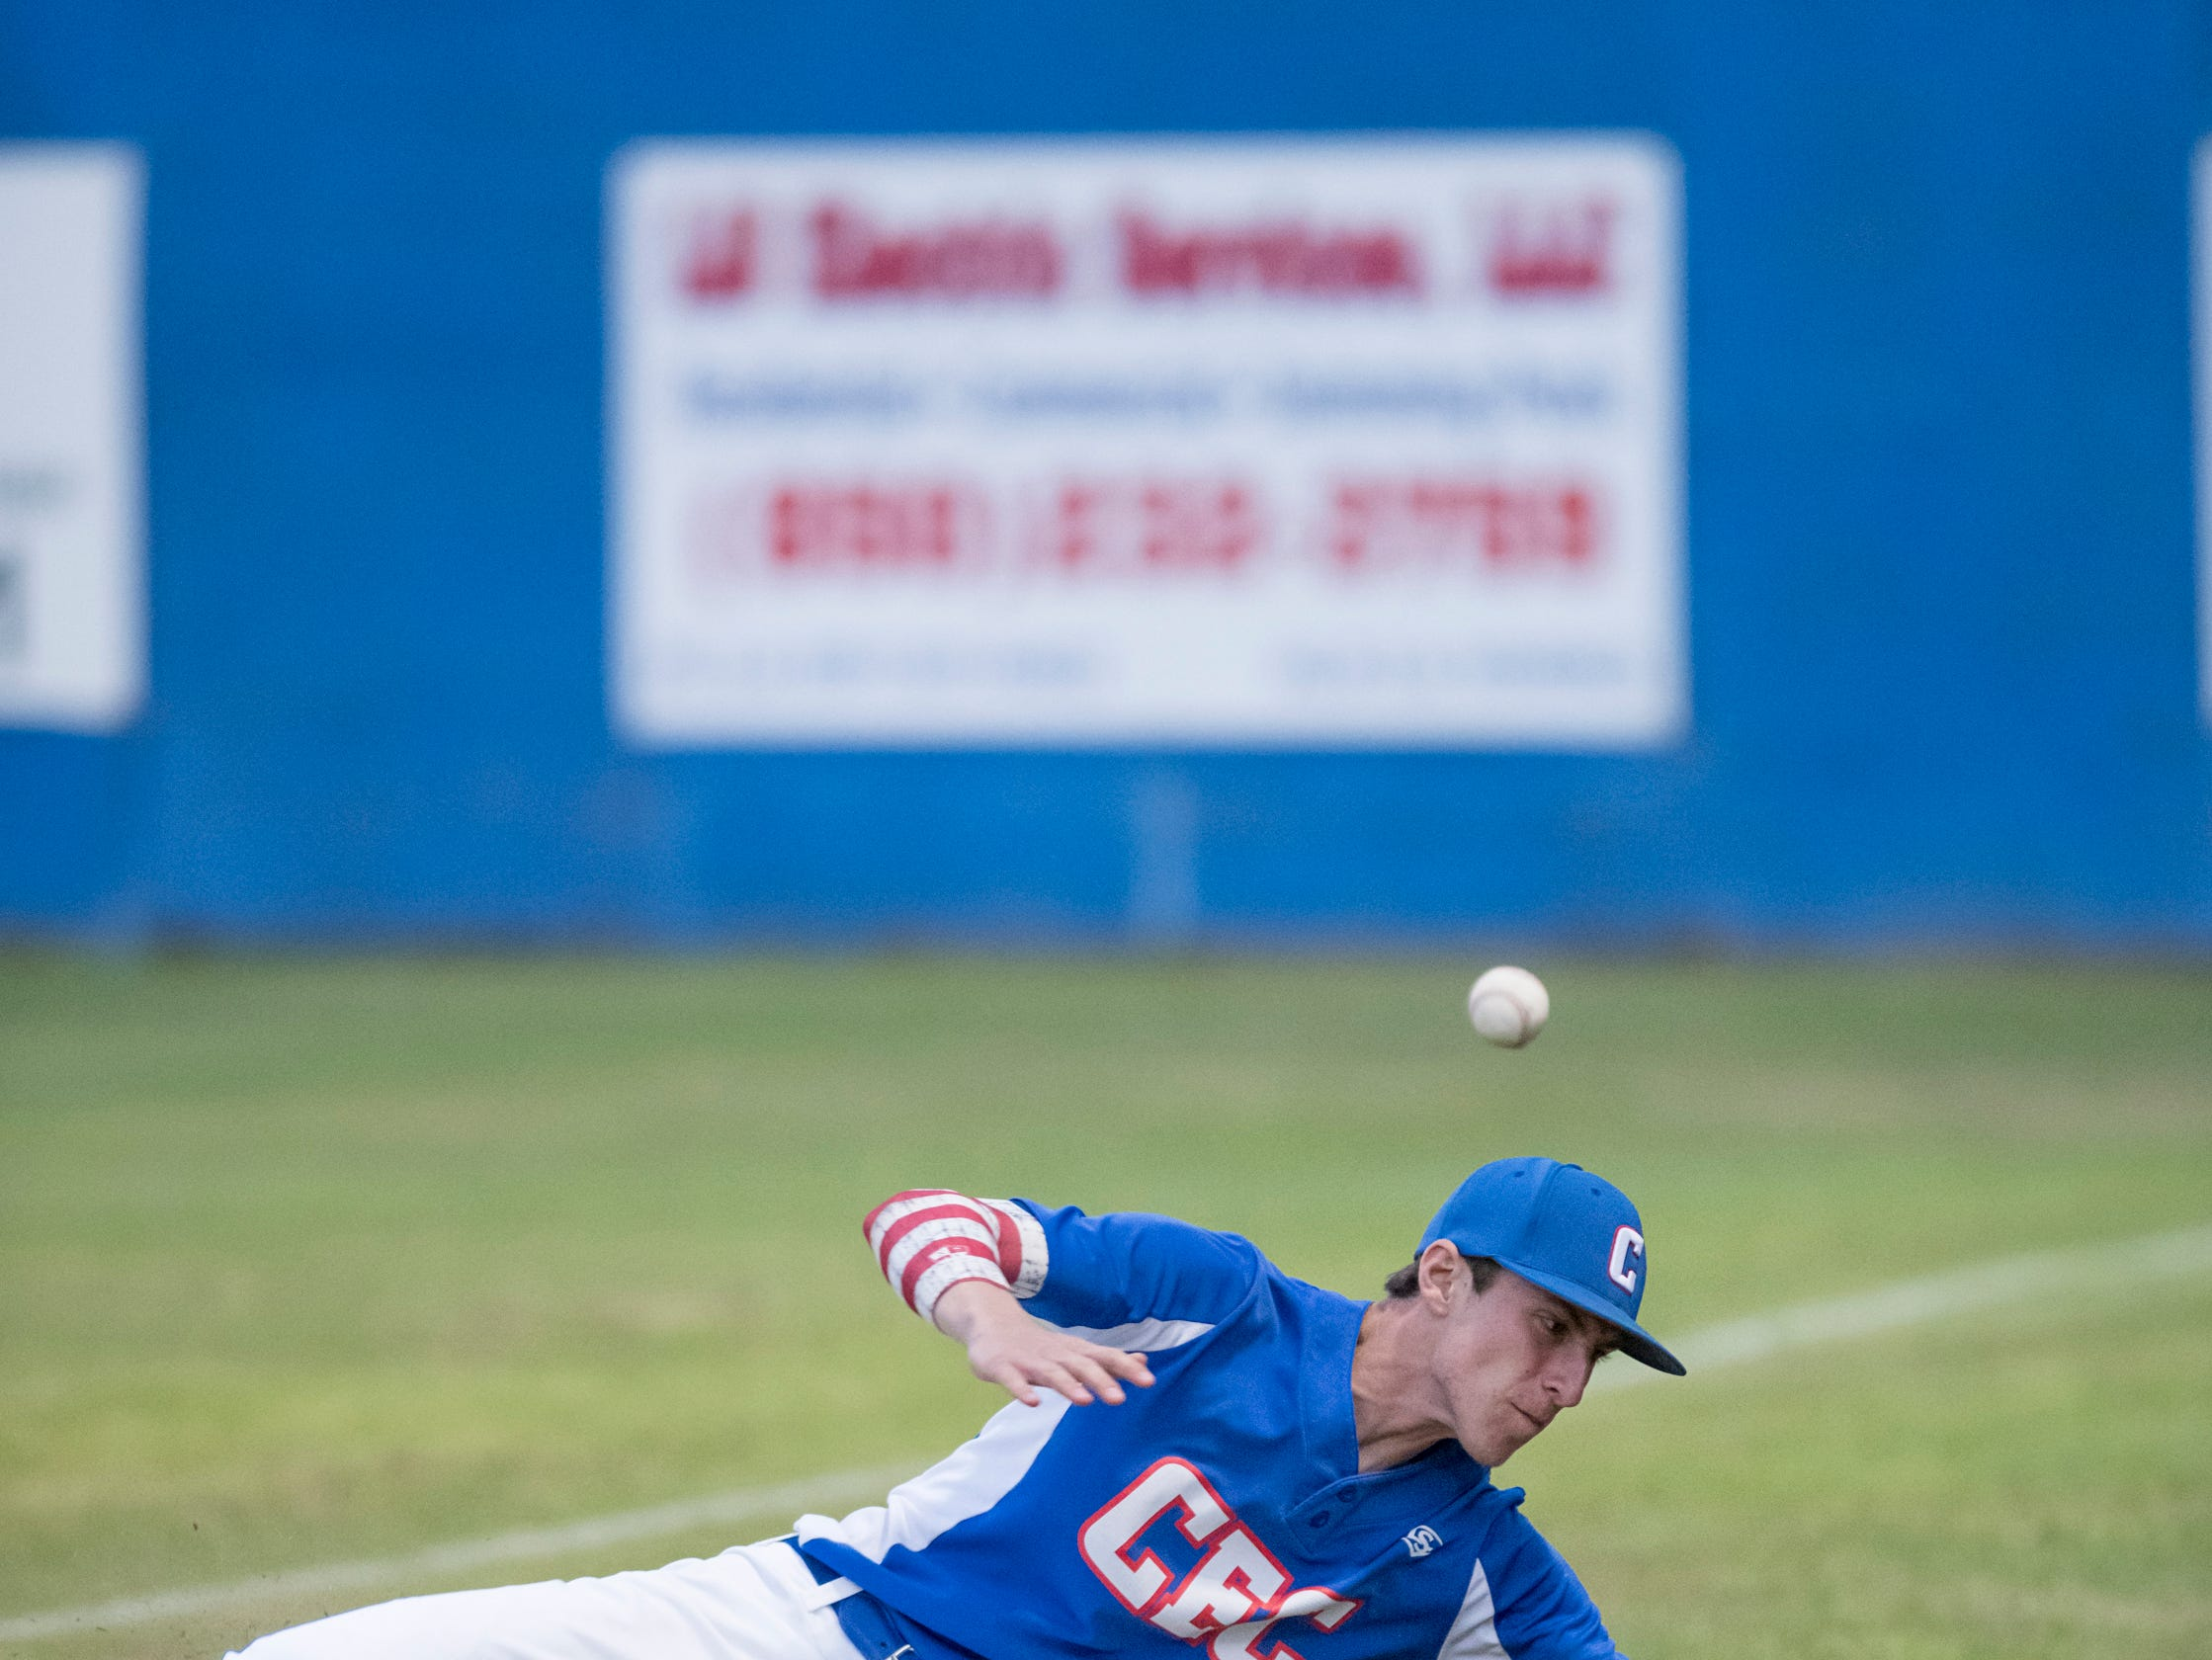 Timmy Williams (20) stays alive after the right fielder can't glove a foul ball pop up during the Christian Educational Consortium vs Pine Forest baseball game at Pine Forest High School in Pensacola on Wednesday, April 3, 2019.